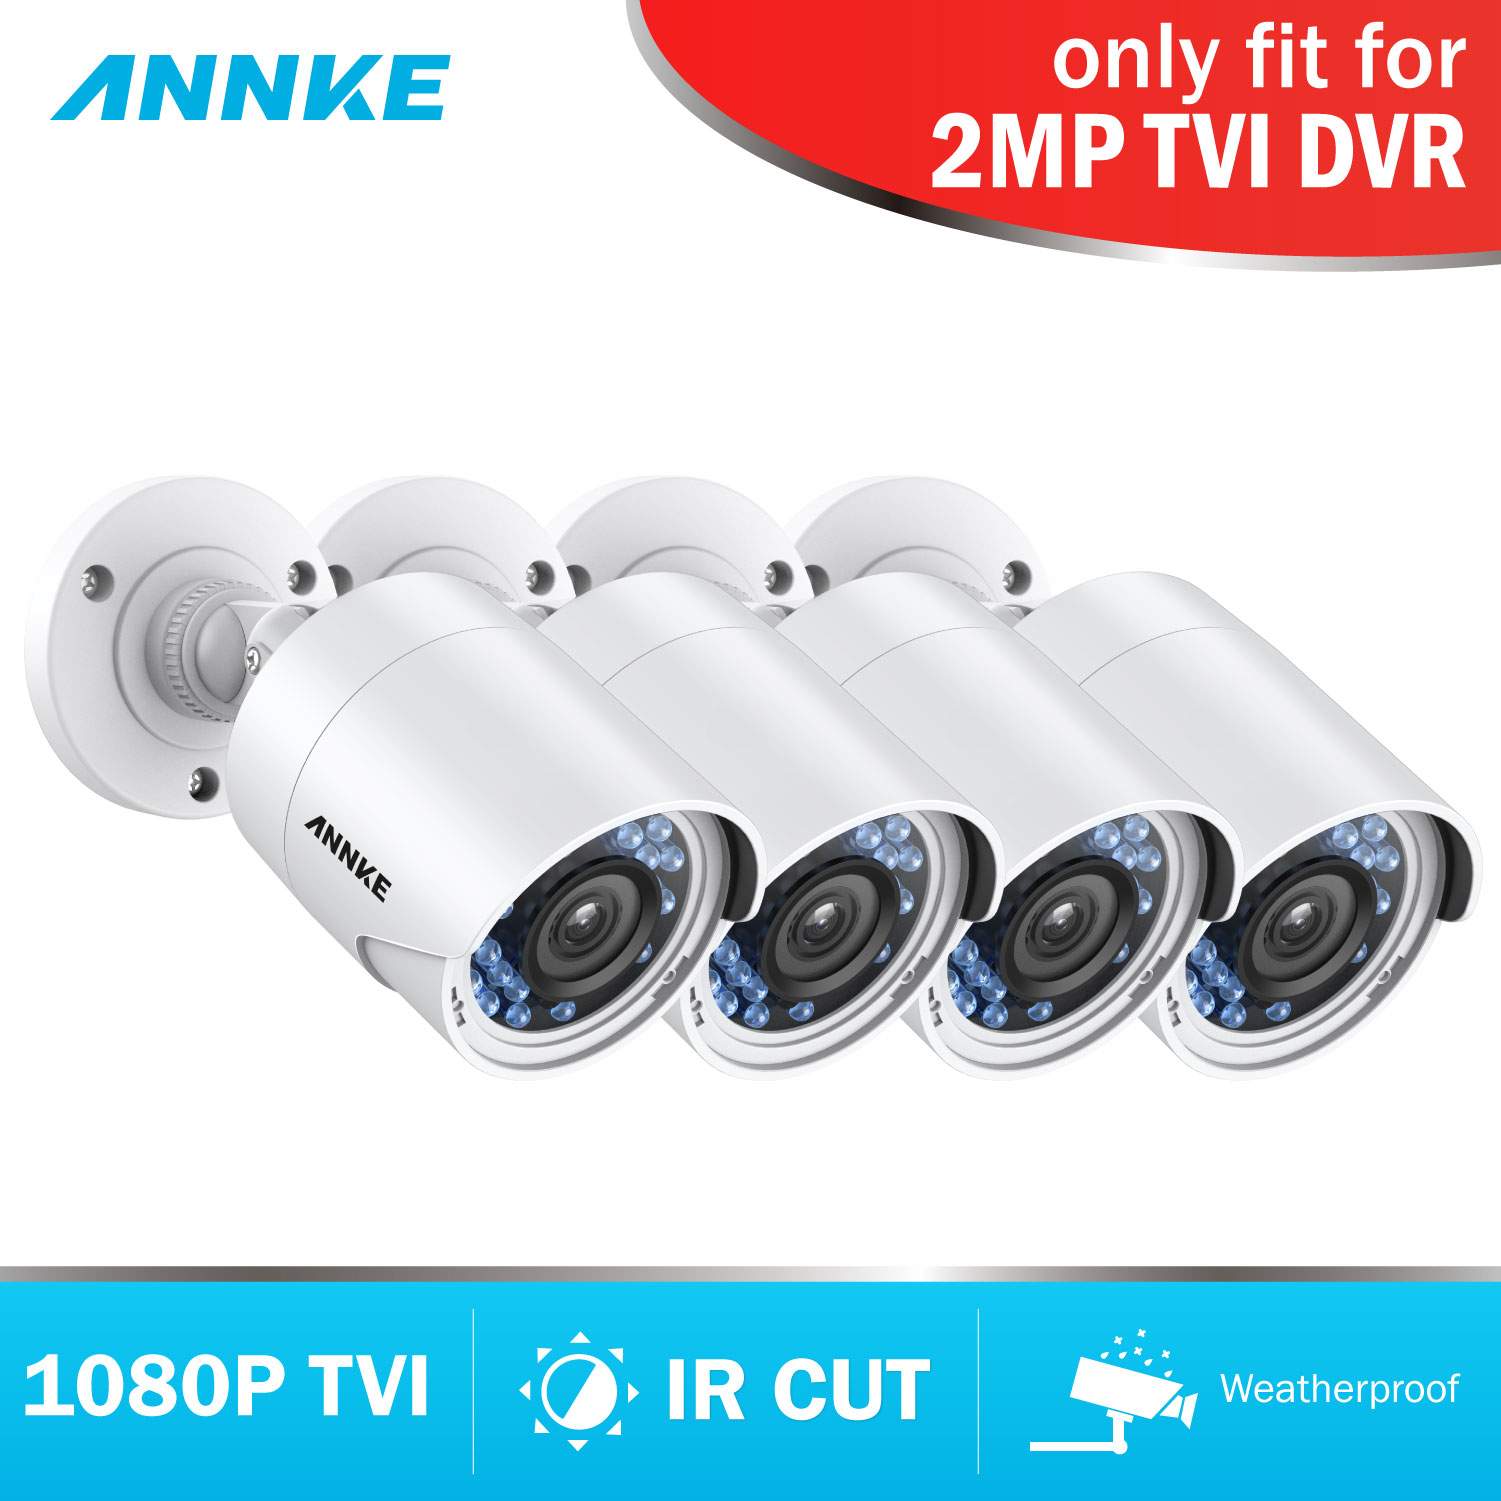 ANNKE 1080P HD TVI Bullet CCTV Camera 4pcs 2MP Weatherproof Housing And 66ft Super Night Vision